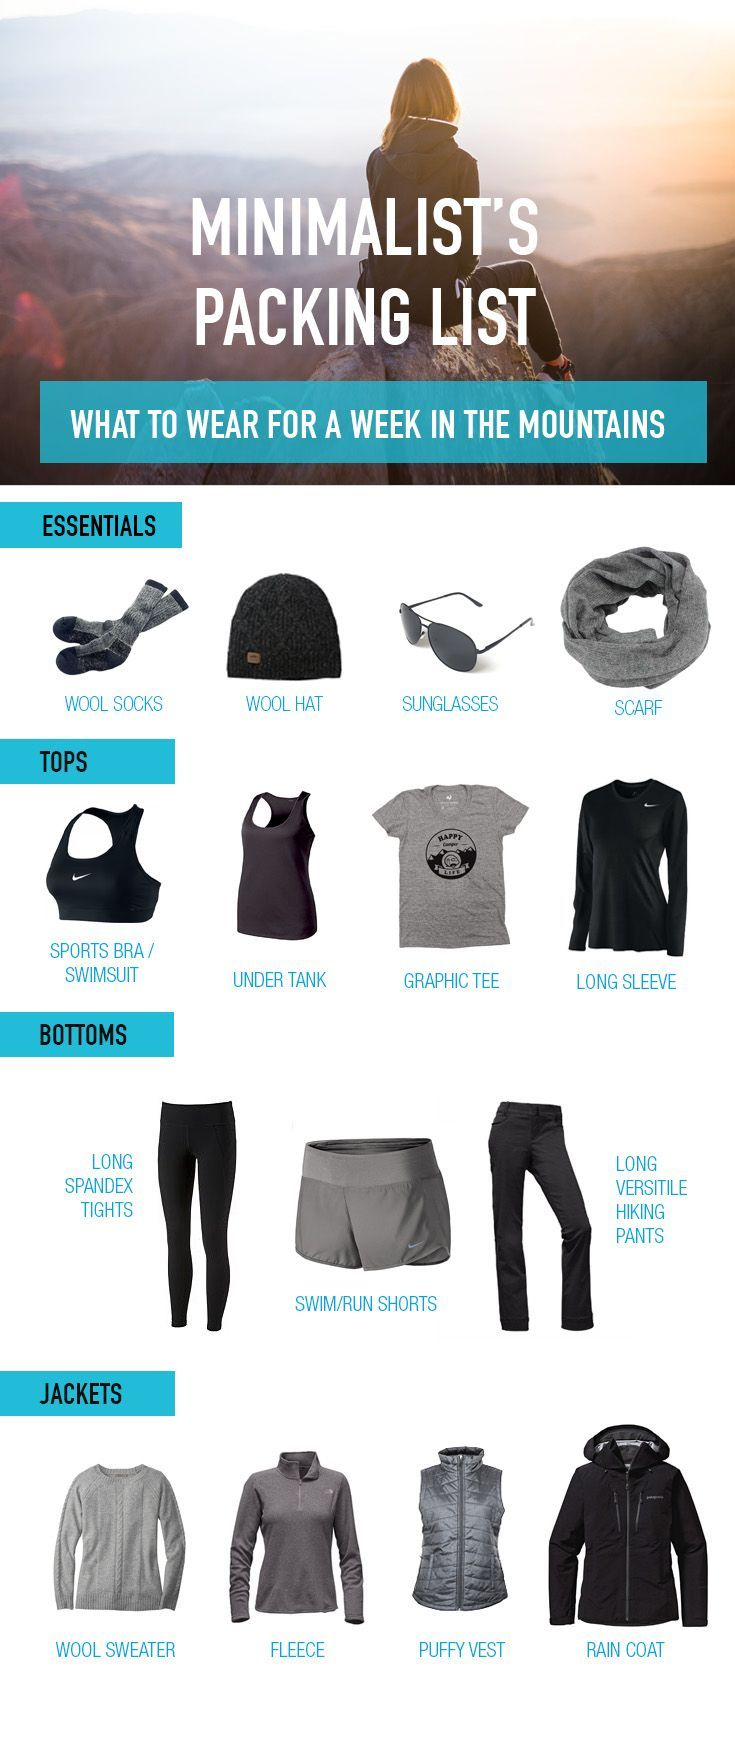 Minimalist packing list for your week long trip to the mountains